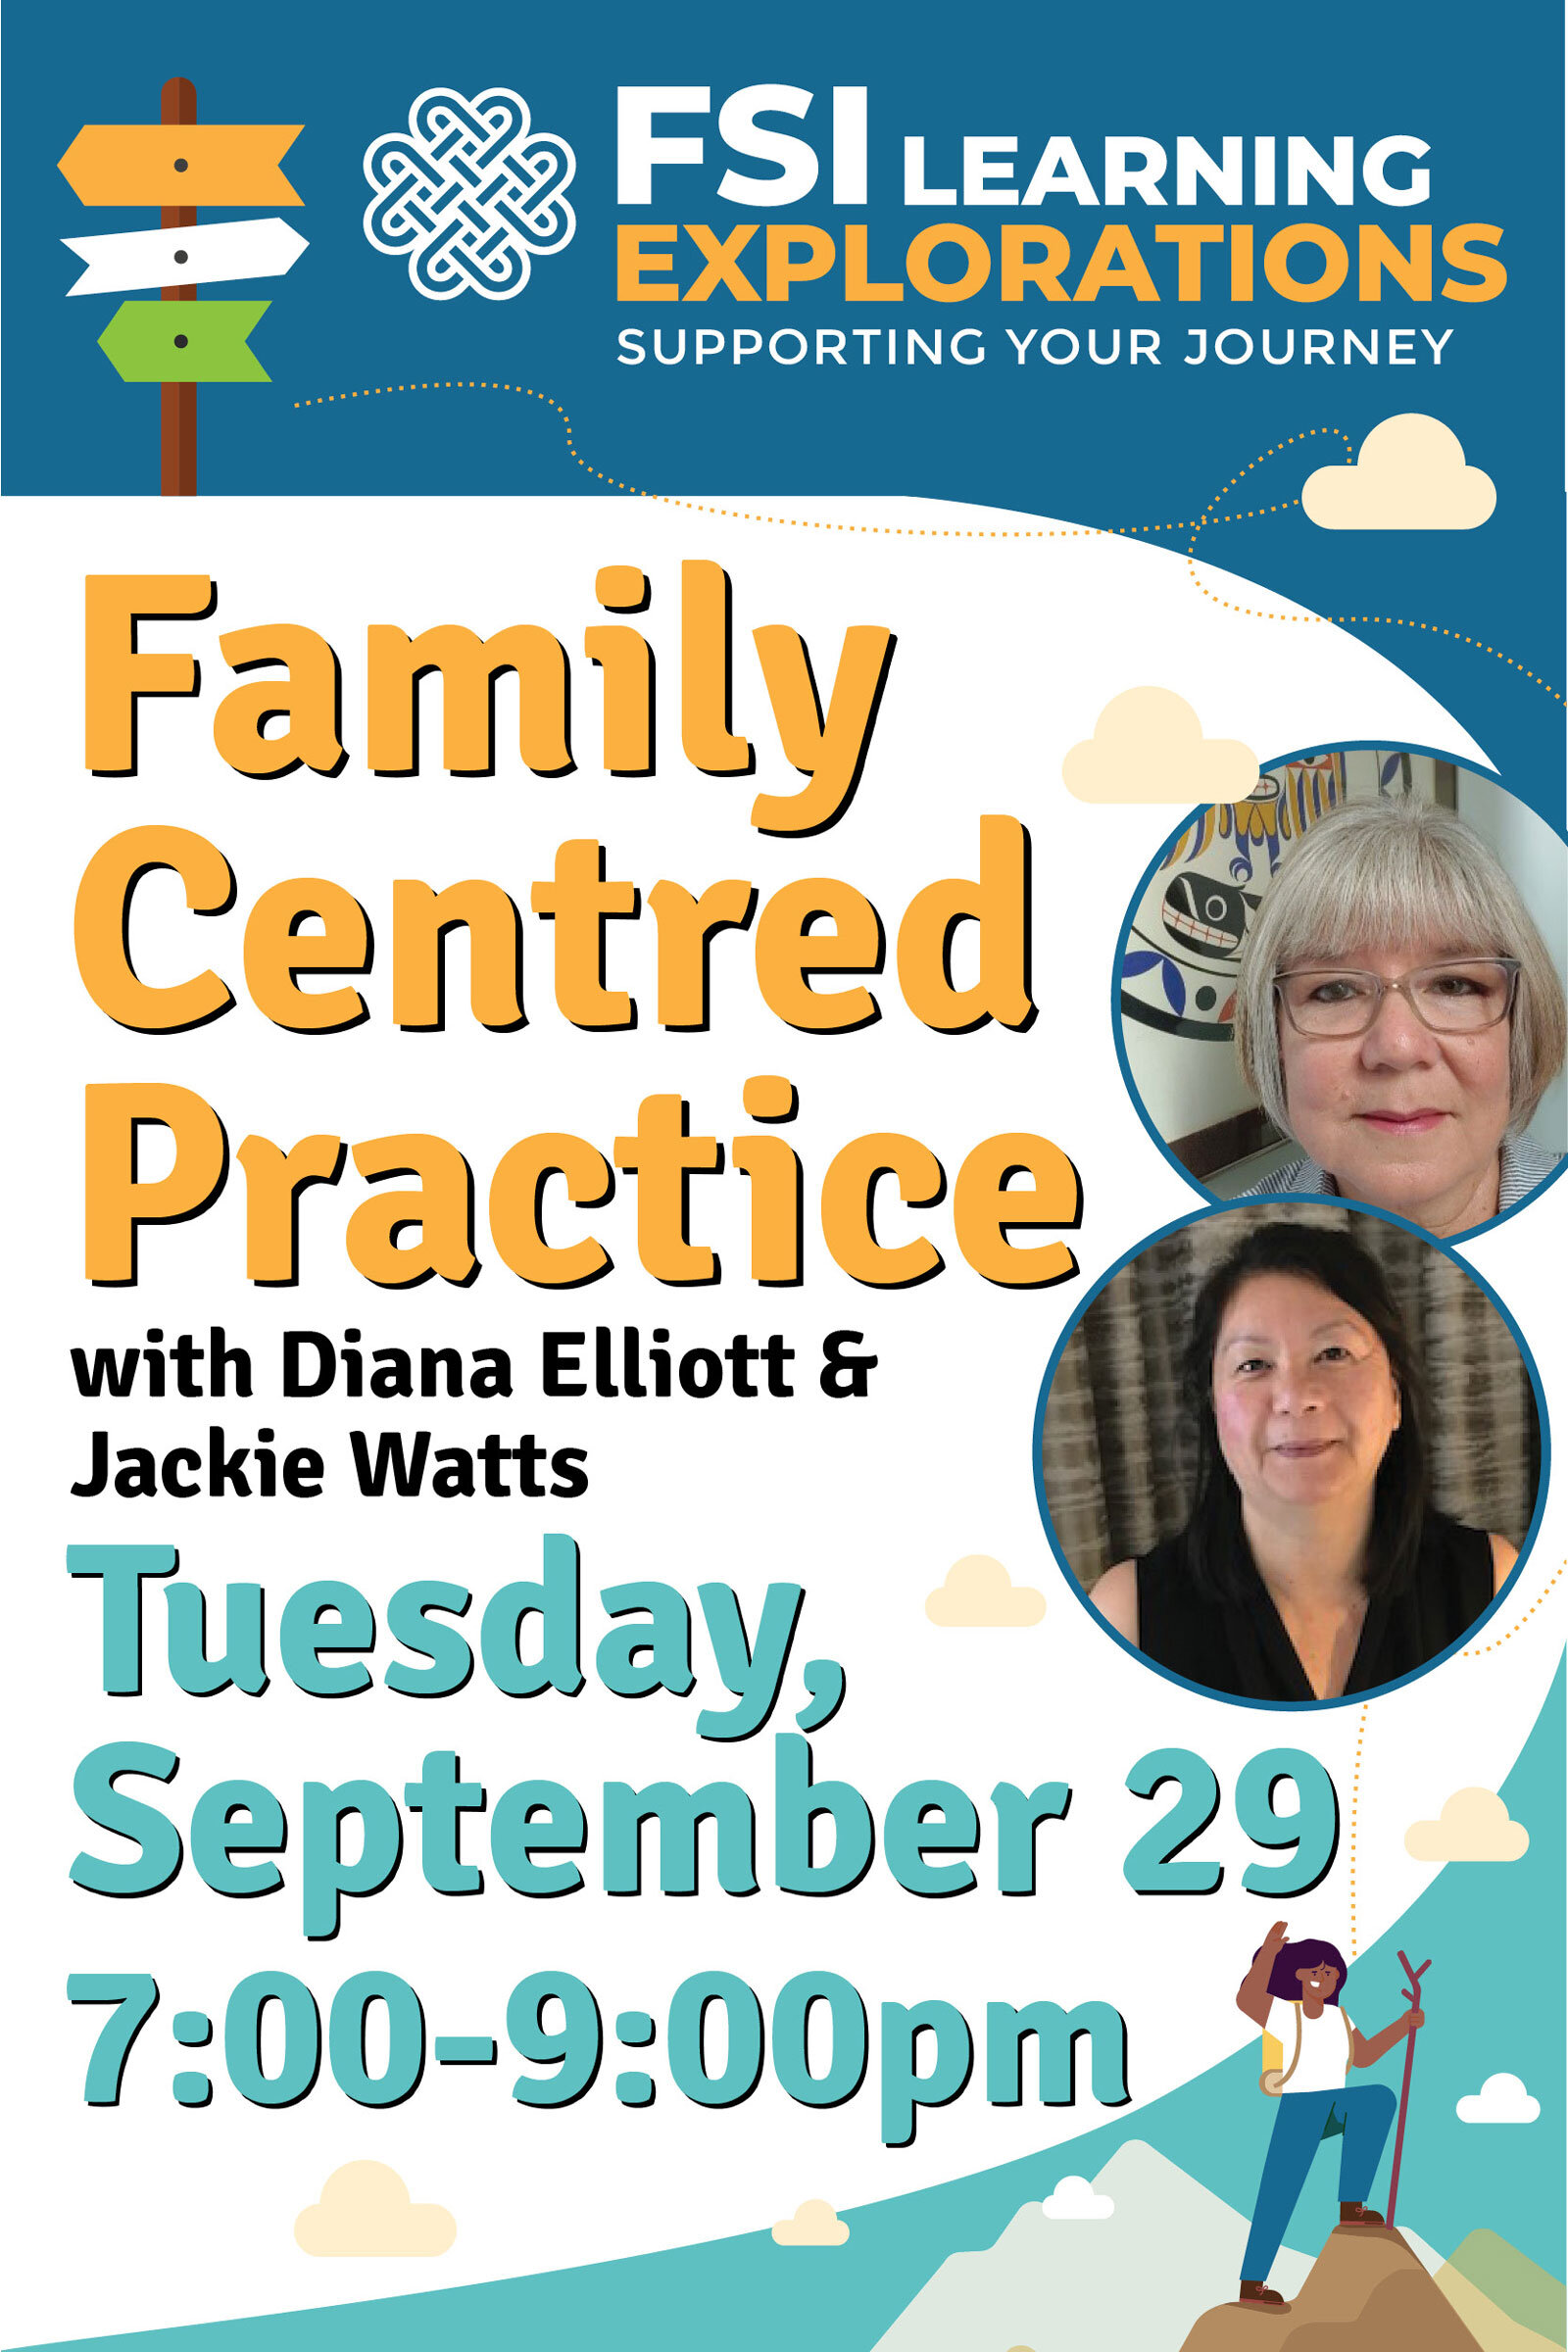 FSI Learning Explorations - Family Centred Practice